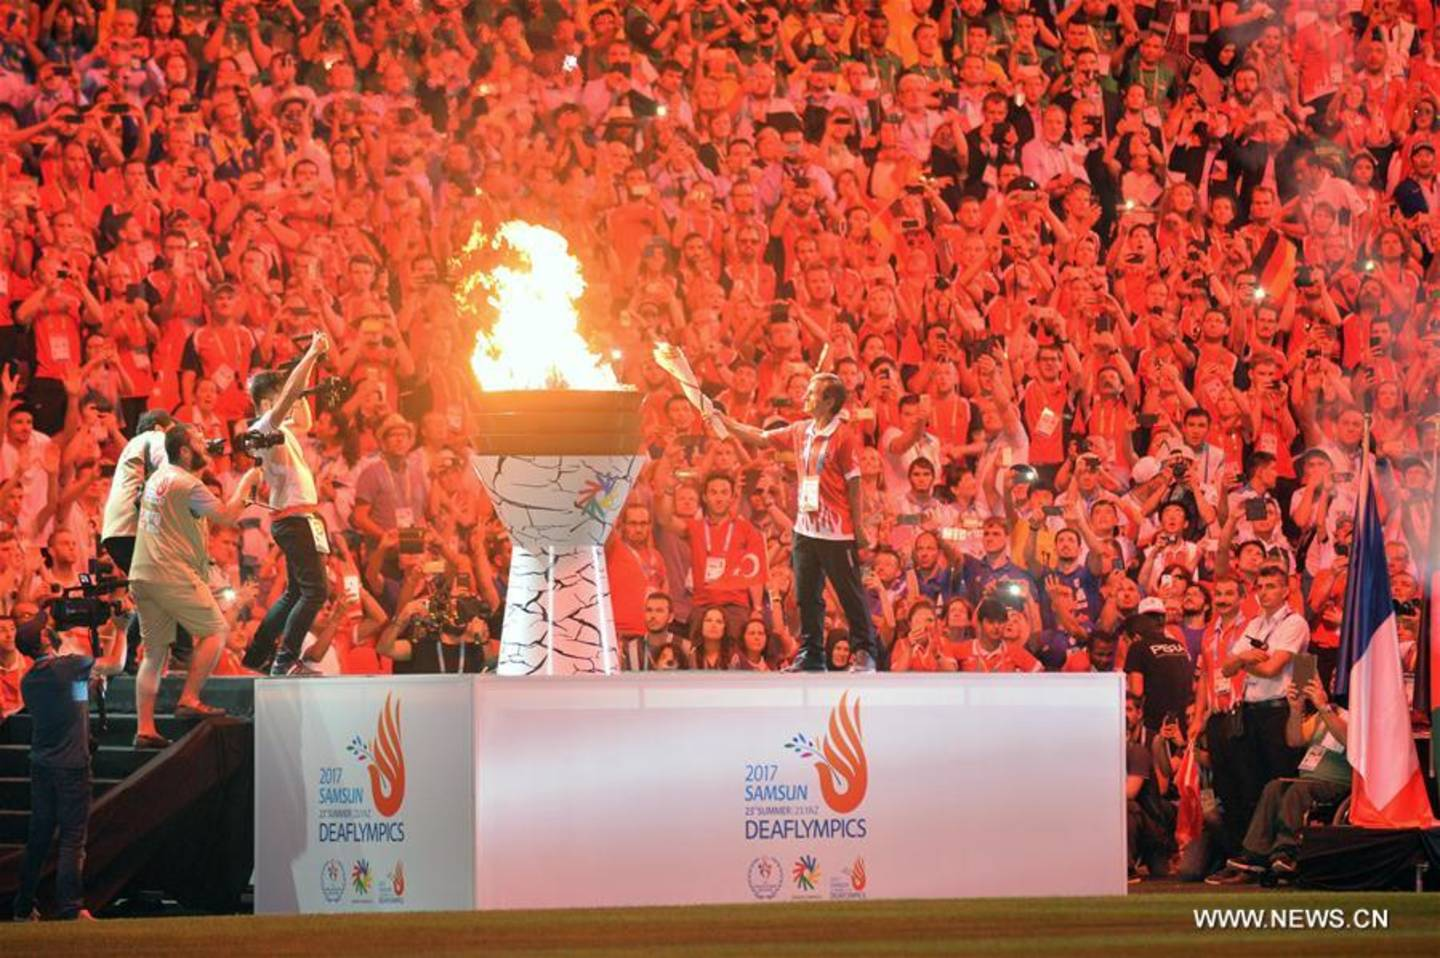 Samsun opening ceremony lighting the flame